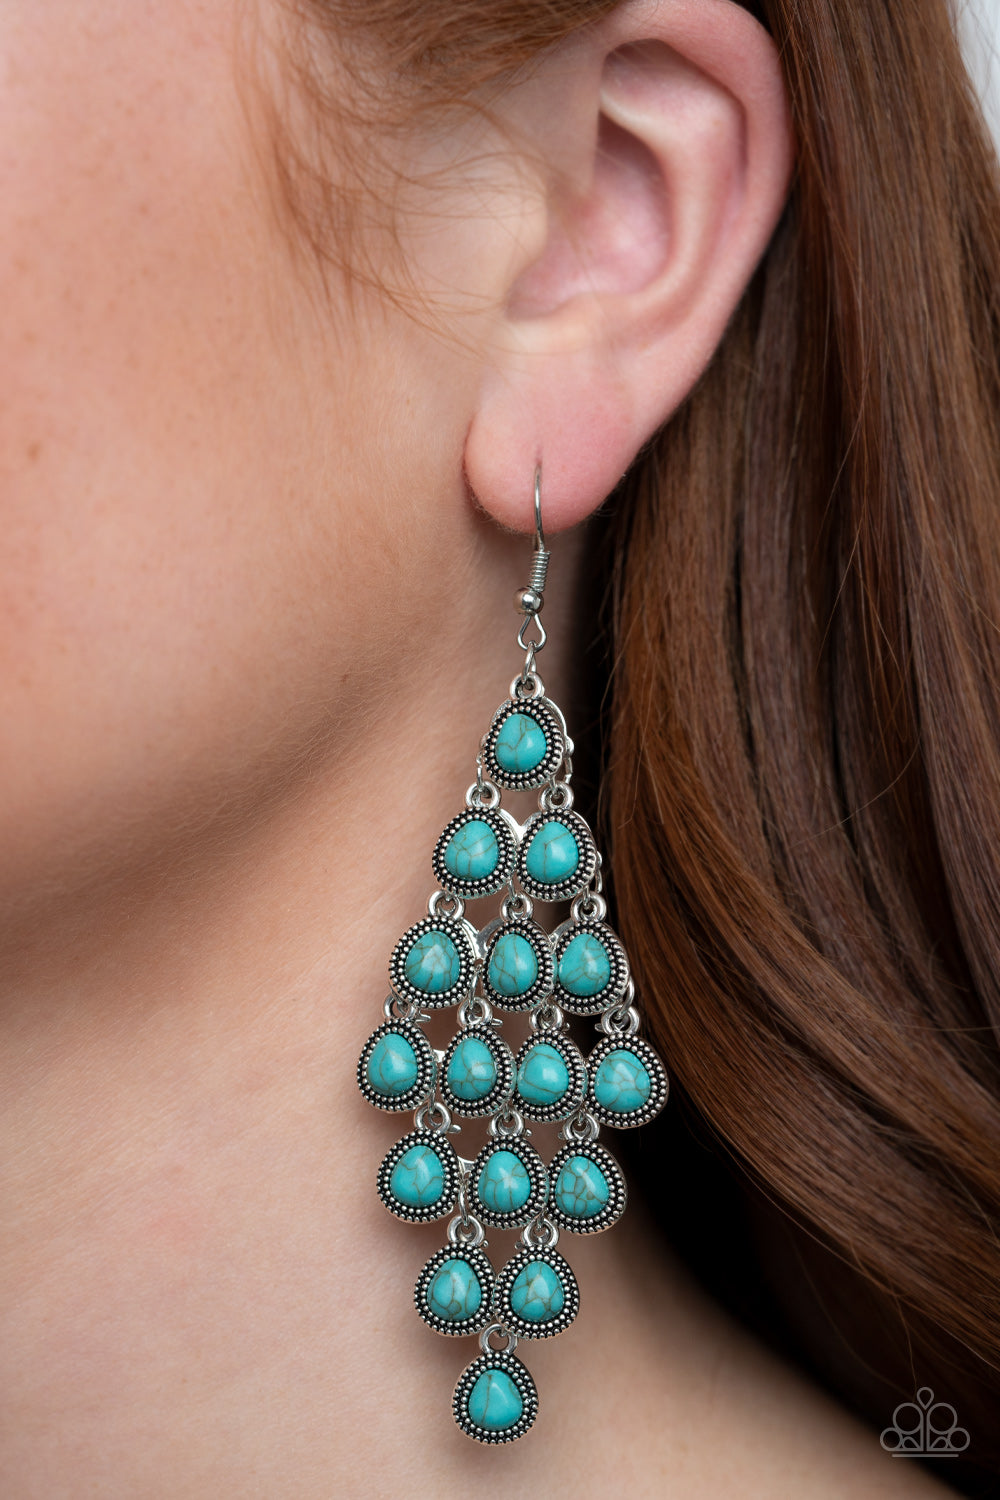 Rural Rainstorms - Blue Earrings Paparazzi Accessories New